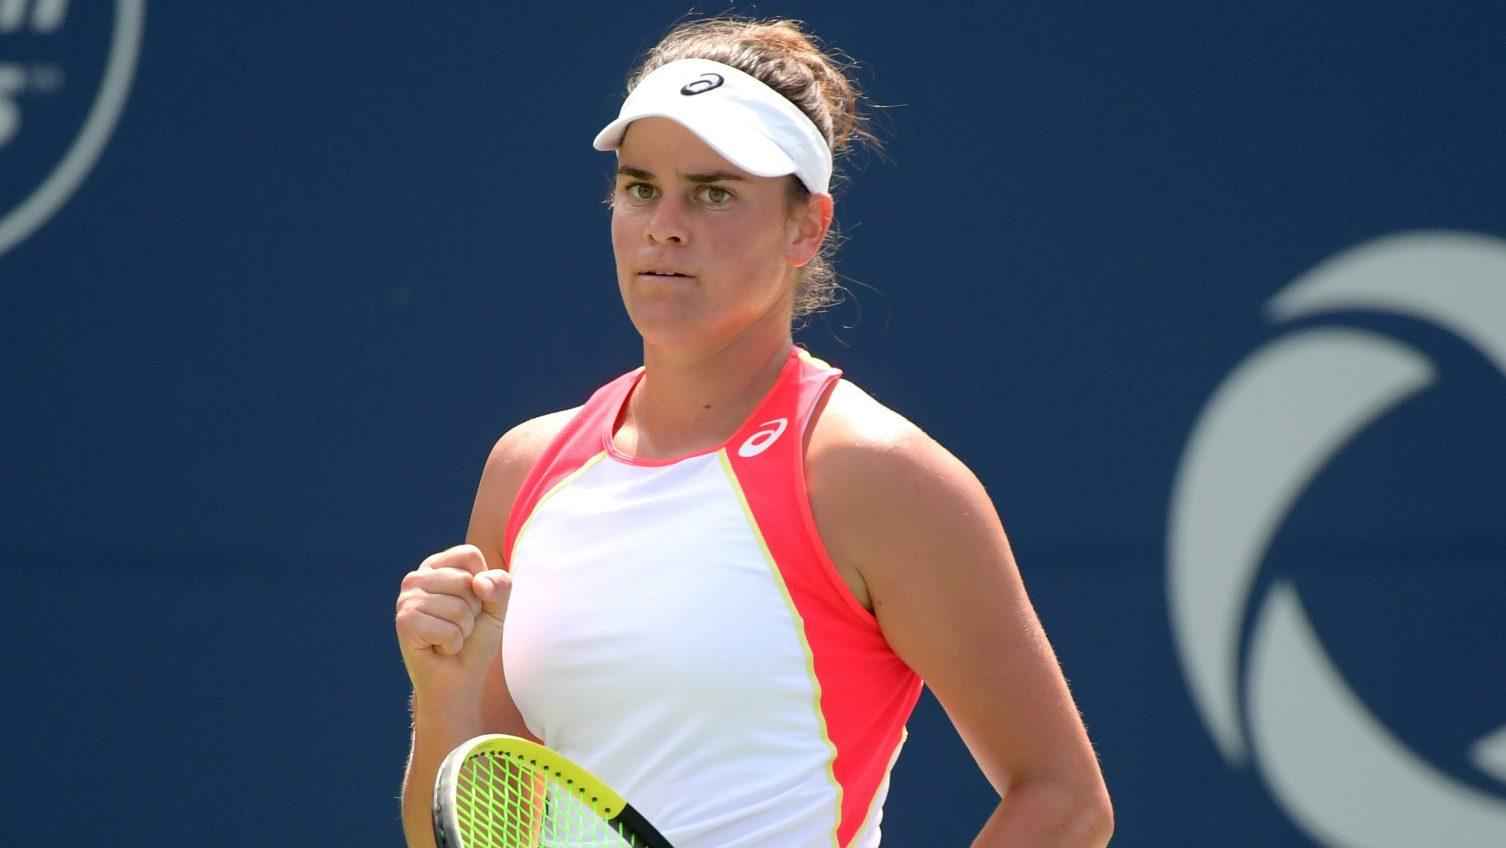 Brady beats Gauff at Top Seed Open to reach first WTA final